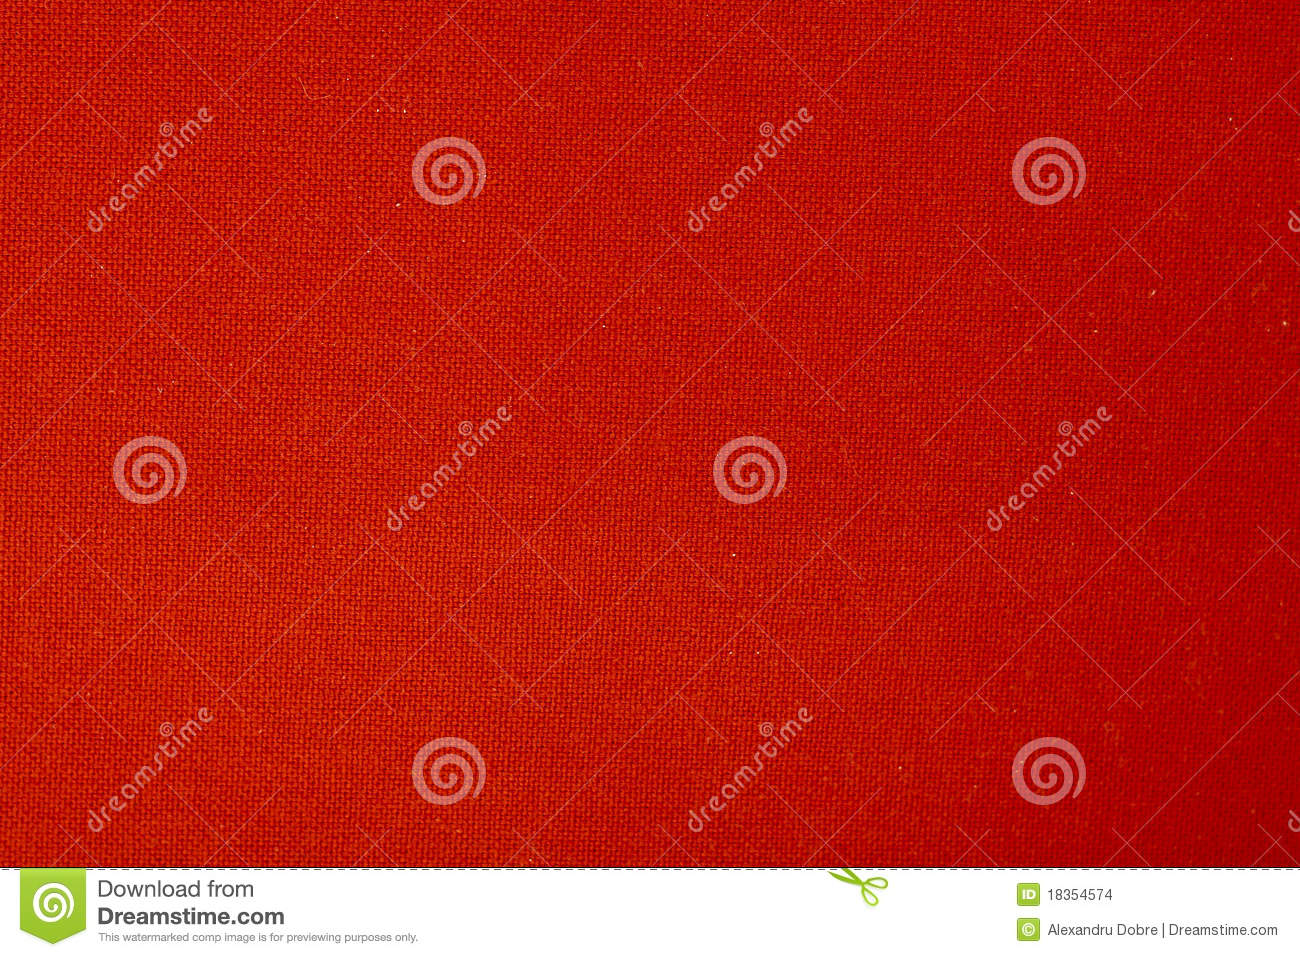 Background (red fabric)